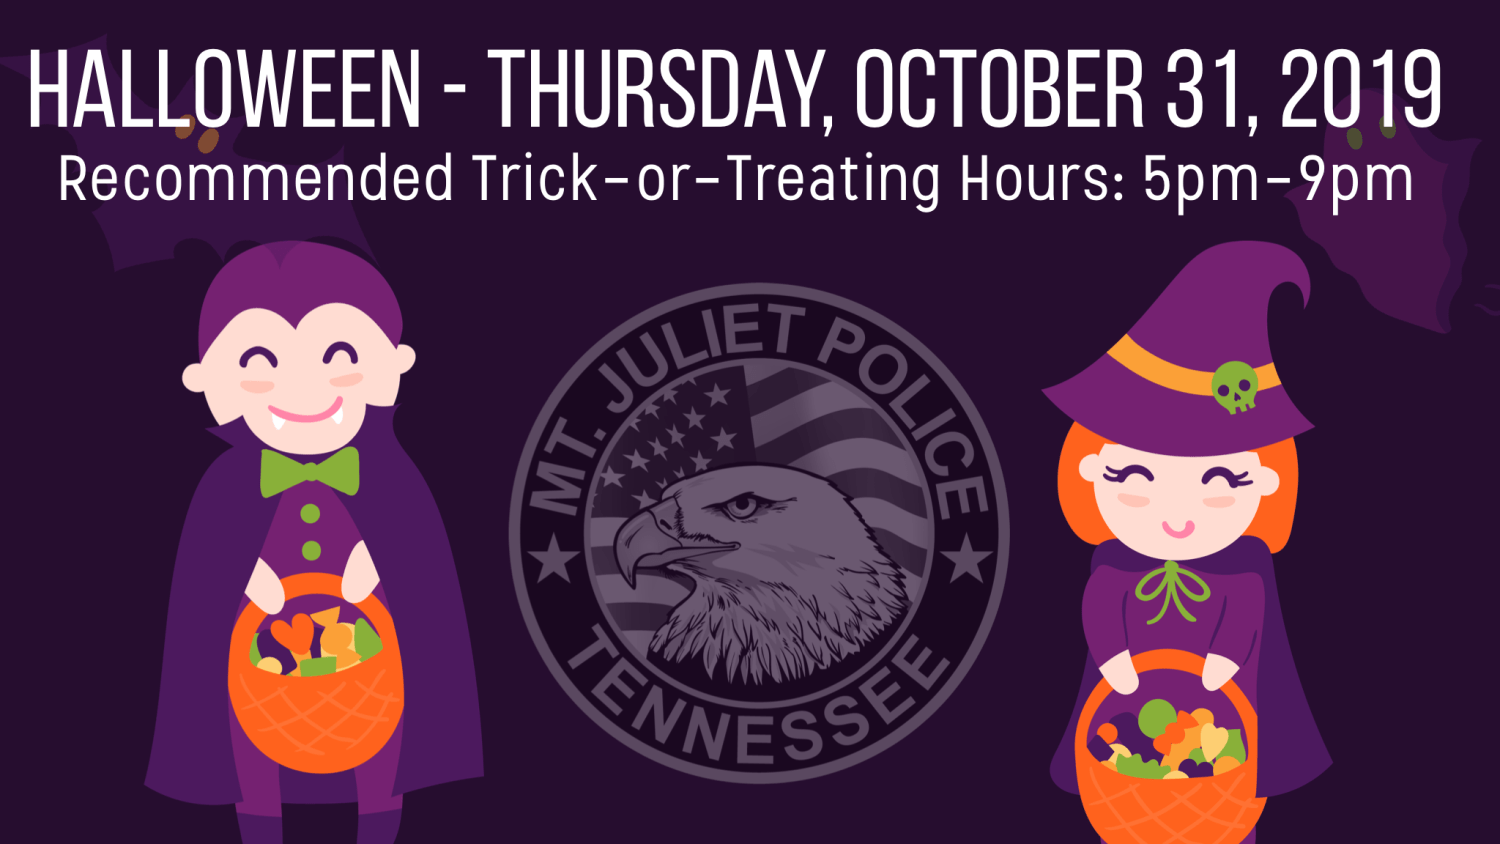 Graphic Image: Halloween - Thursday, October 2019 - Recommended Trick-or-Treating Hours: 5PM-9PM